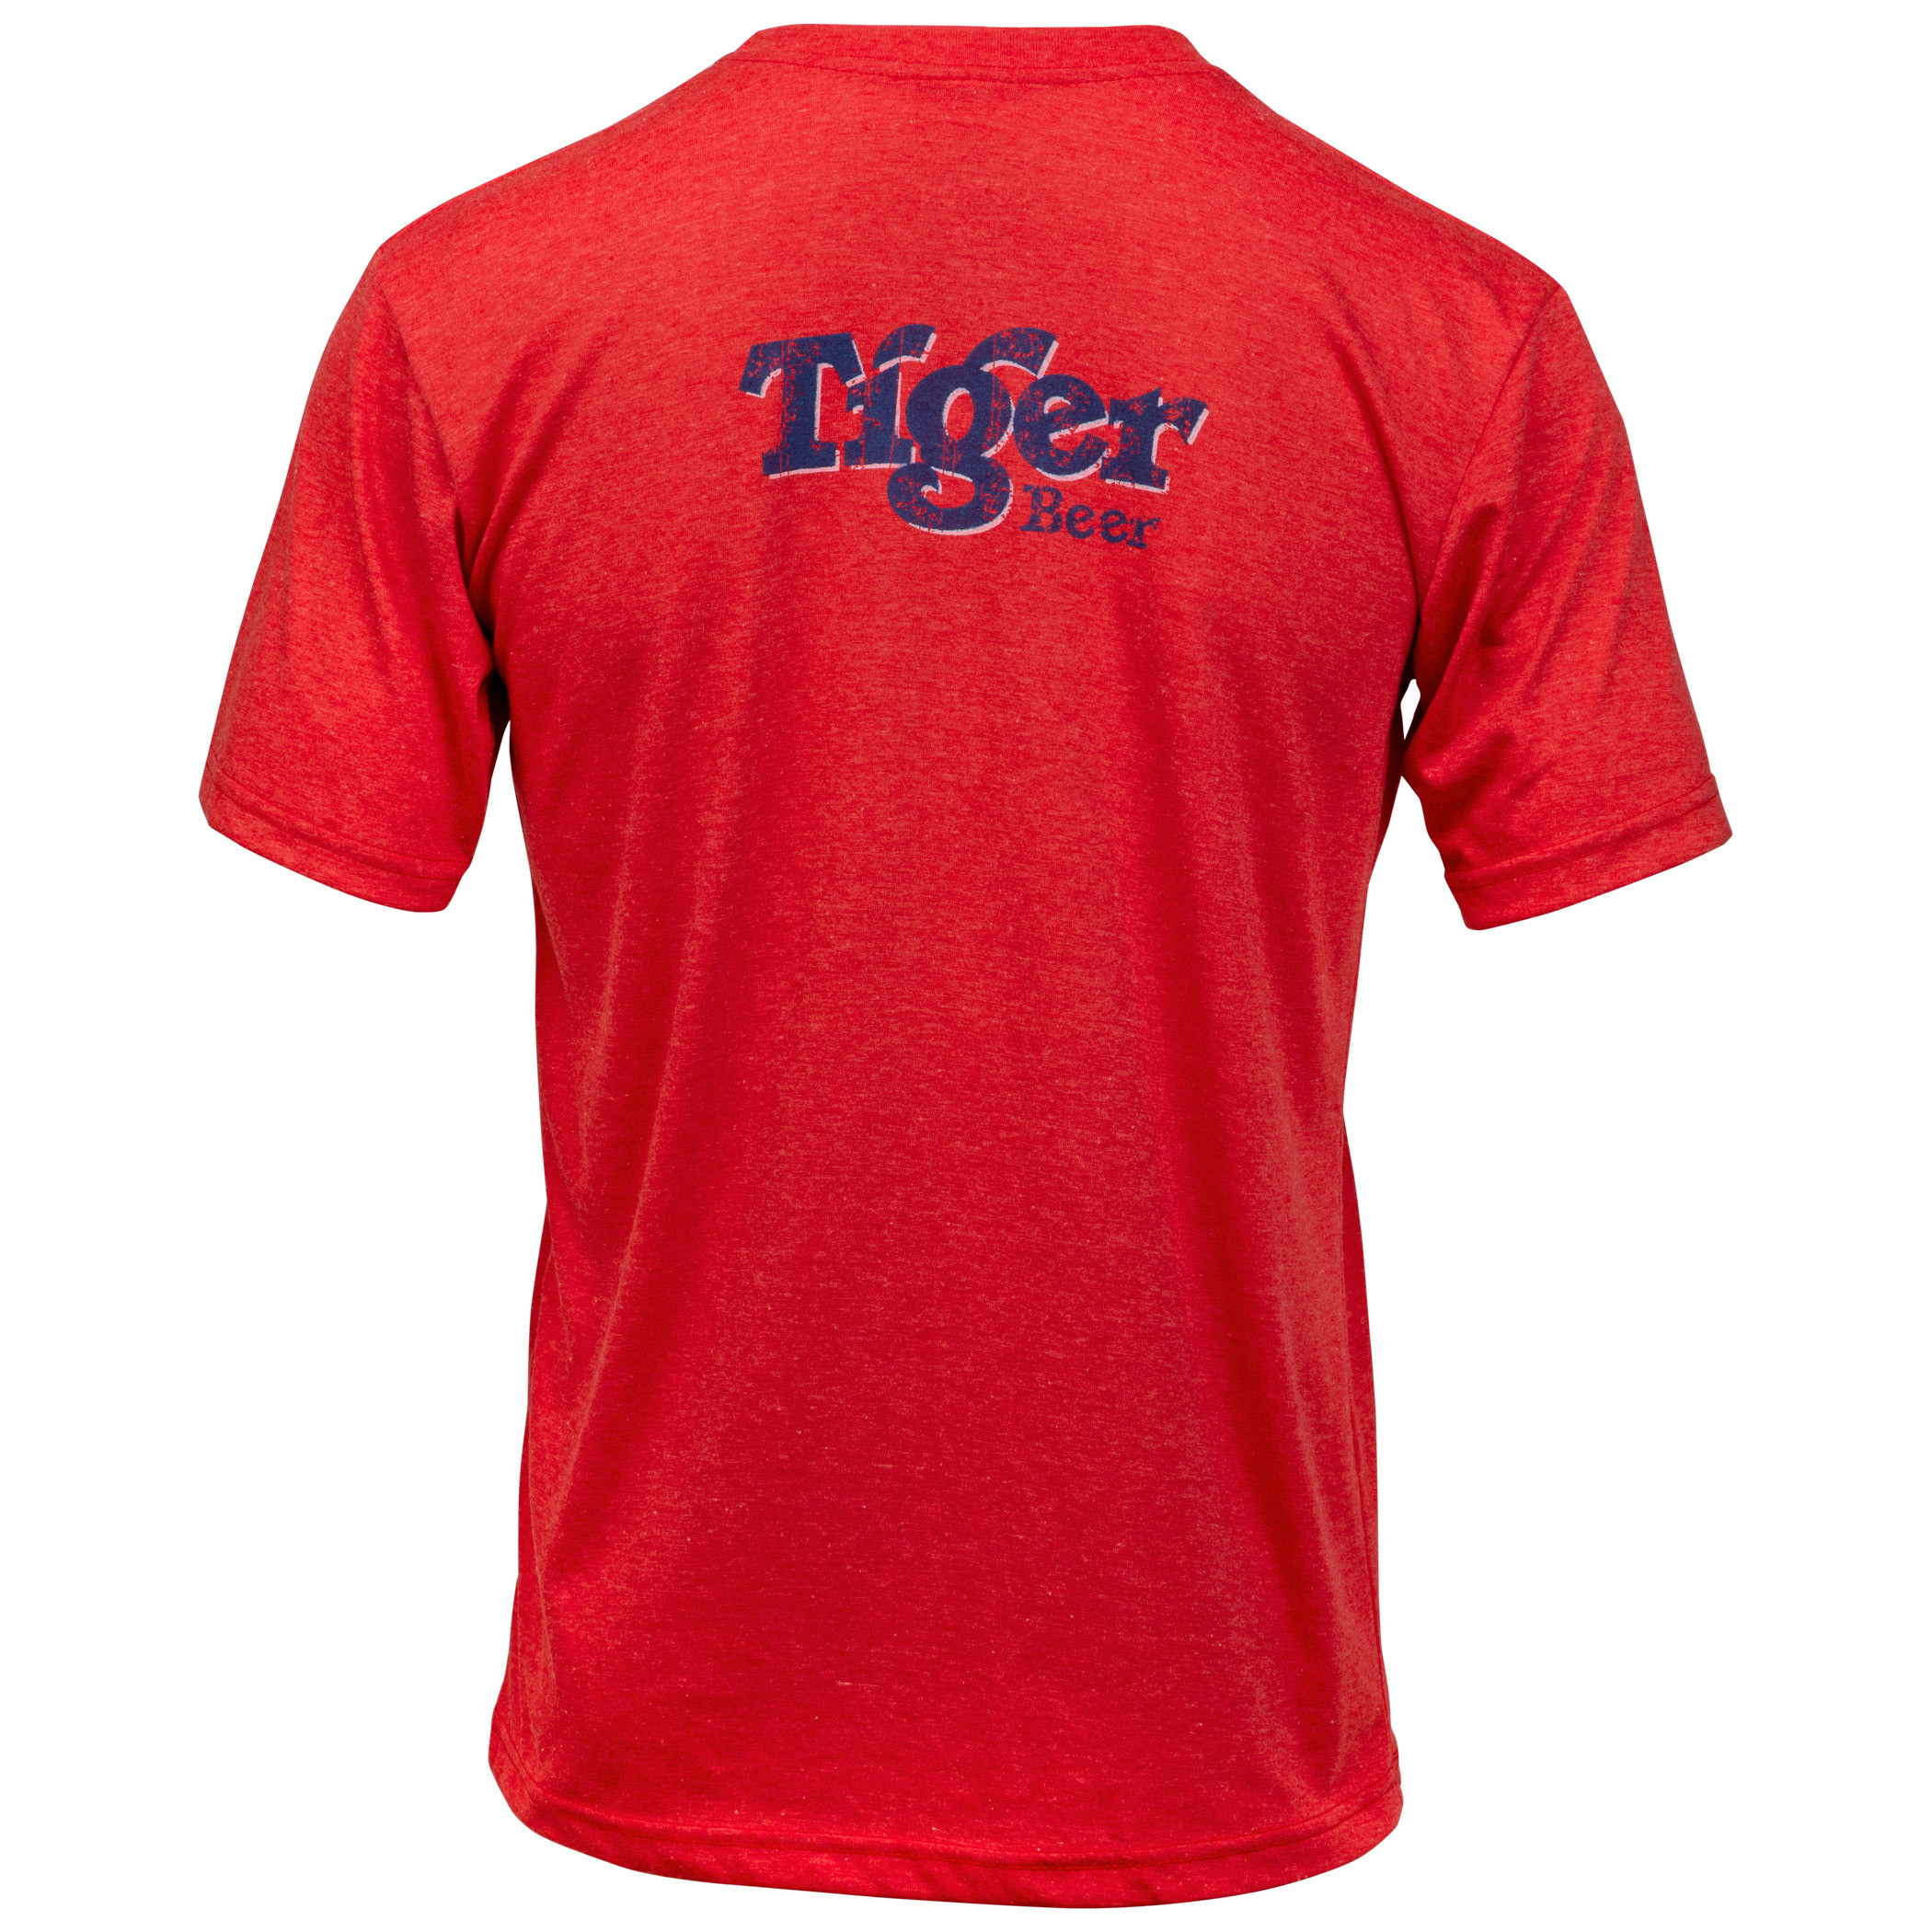 Tiger Beer Vintage Distressed Style T-Shirt